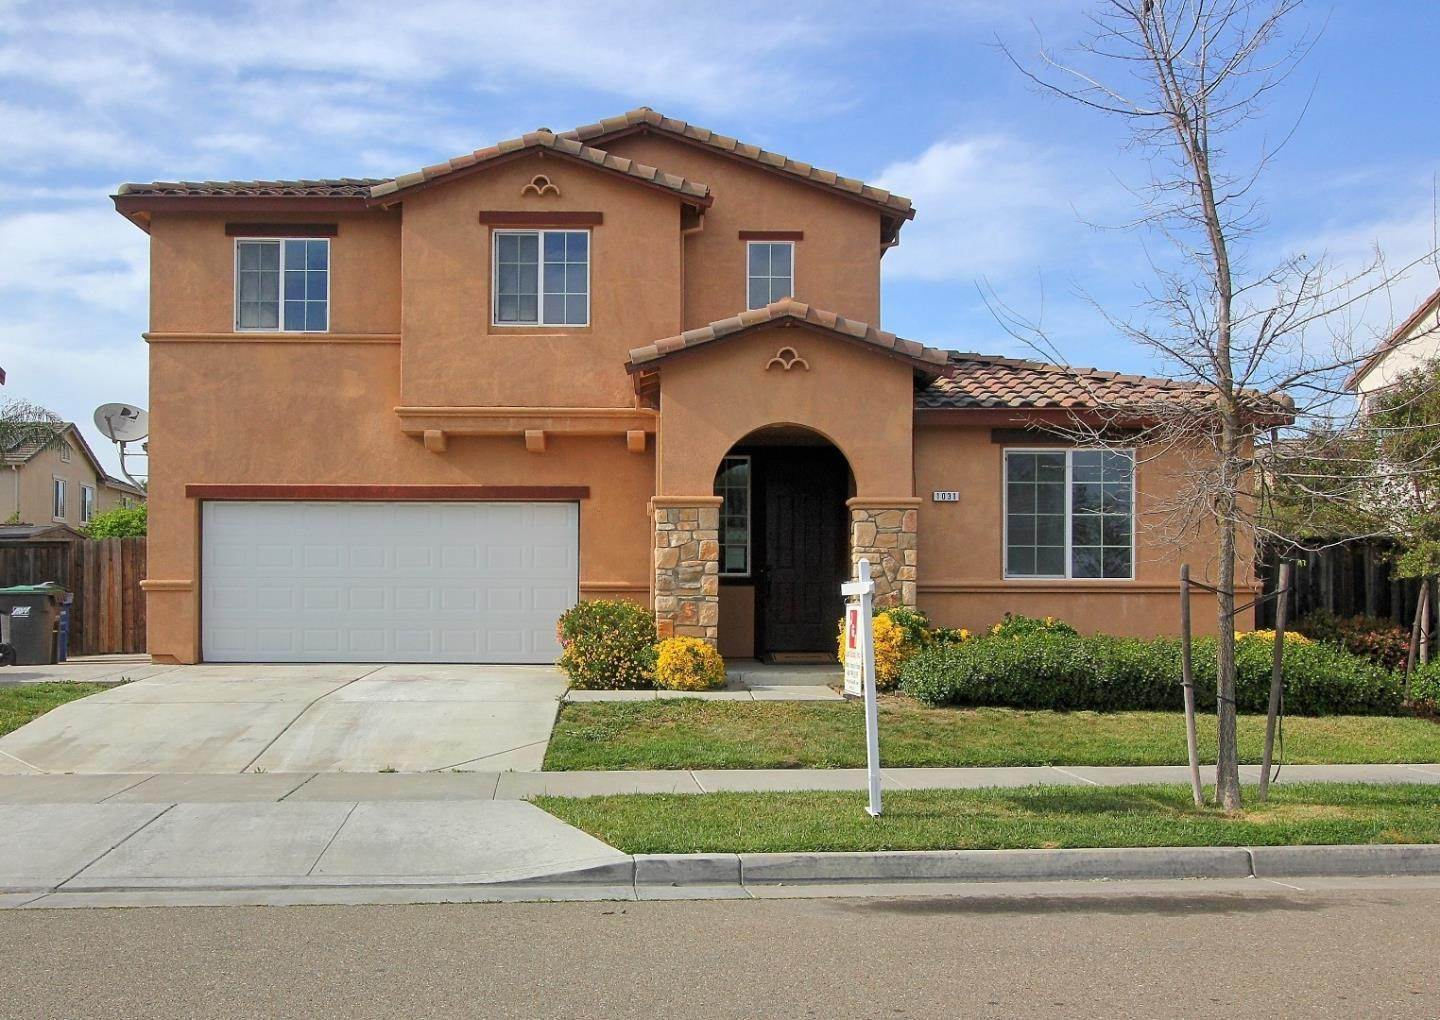 Single Family Homes for Sale at 1031 Old Wharf Place Lathrop, California 95330 United States